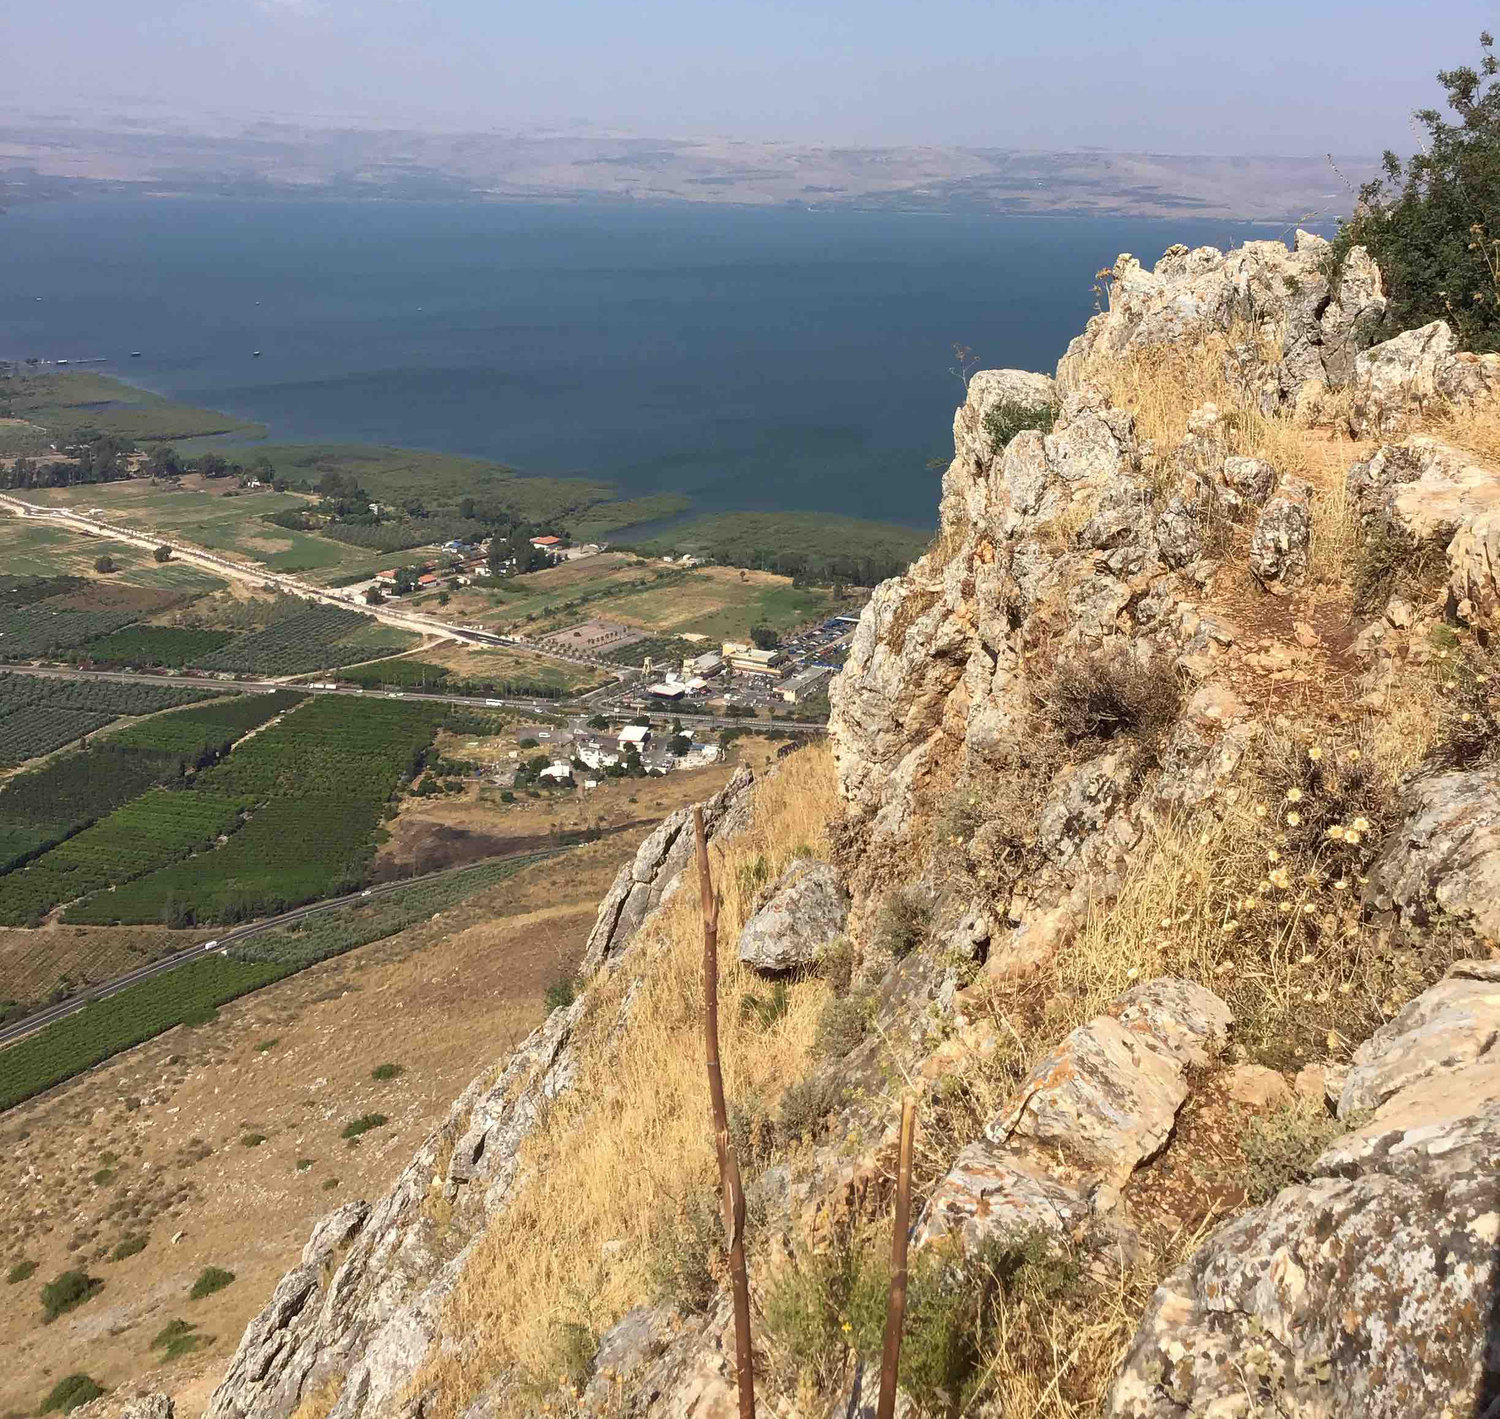 This view is from Mount Ariel in the Sea of Galilee region.